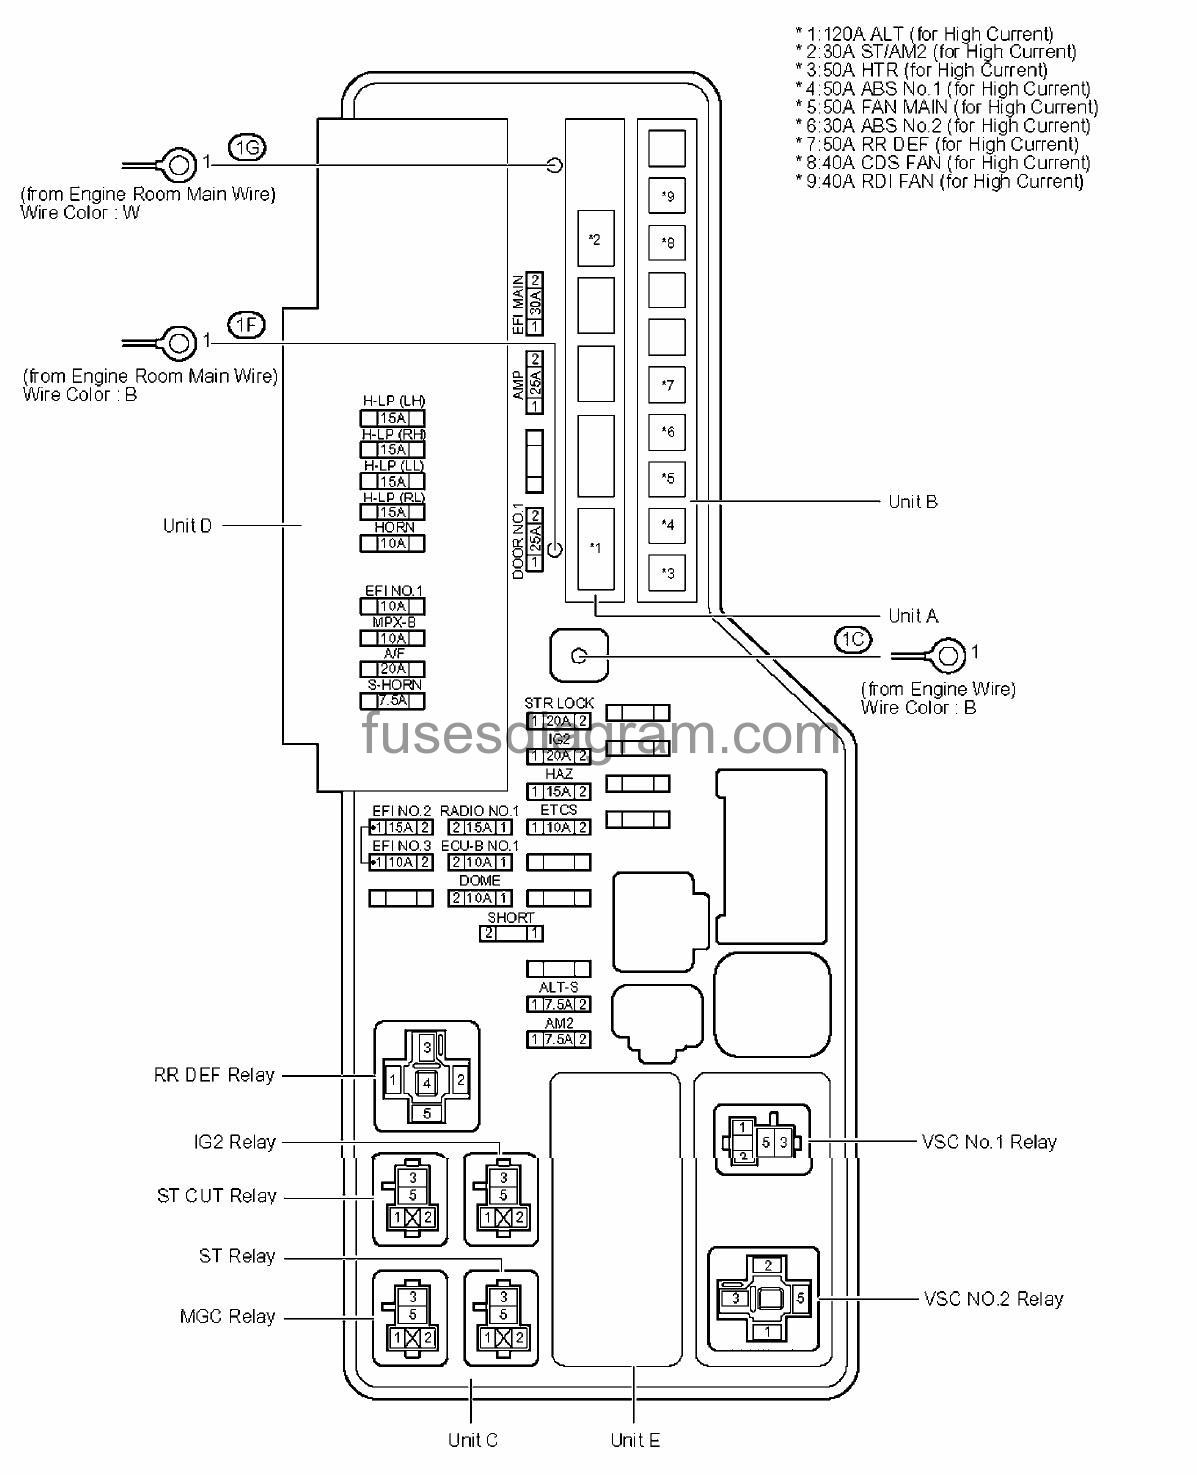 2011 toyota Sienna Wiring Diagram 2011 Prius Fuse Box Diagram : 27 Wiring  Diagram Images ...